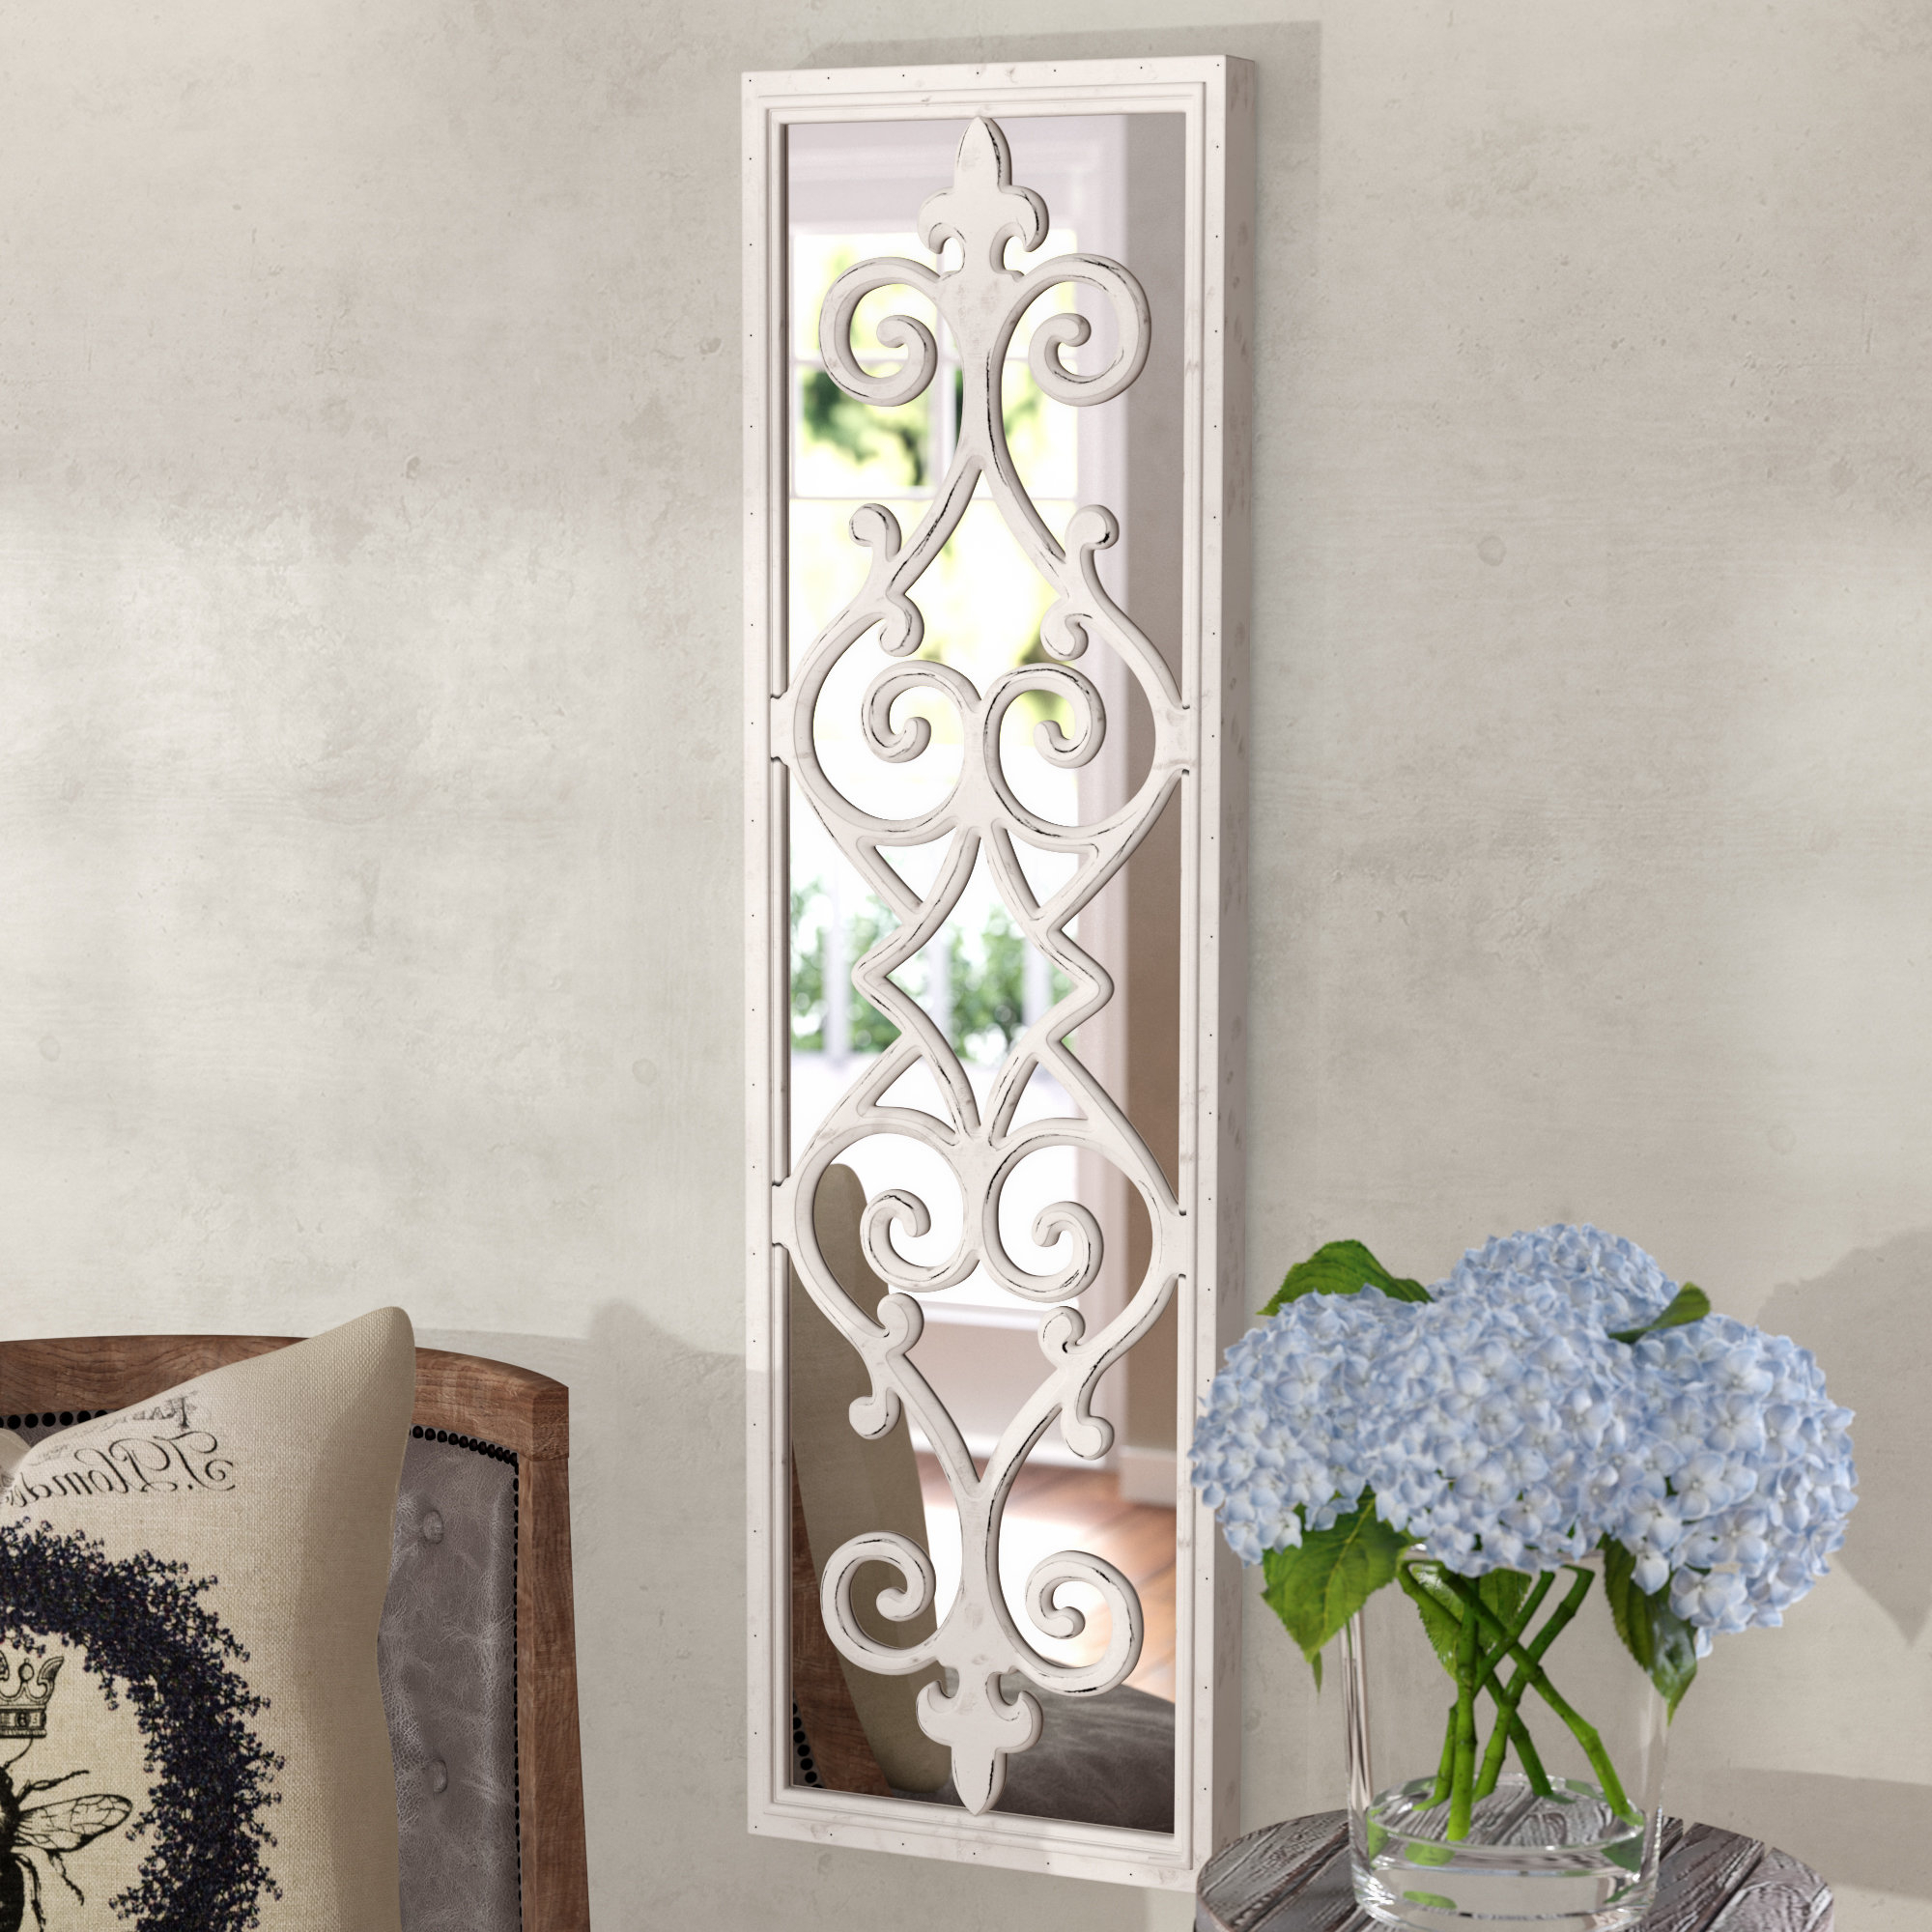 Politte Framed Decorative Scroll Wall Mirror Intended For Well Liked Decorative Cheap Wall Mirrors (View 16 of 20)